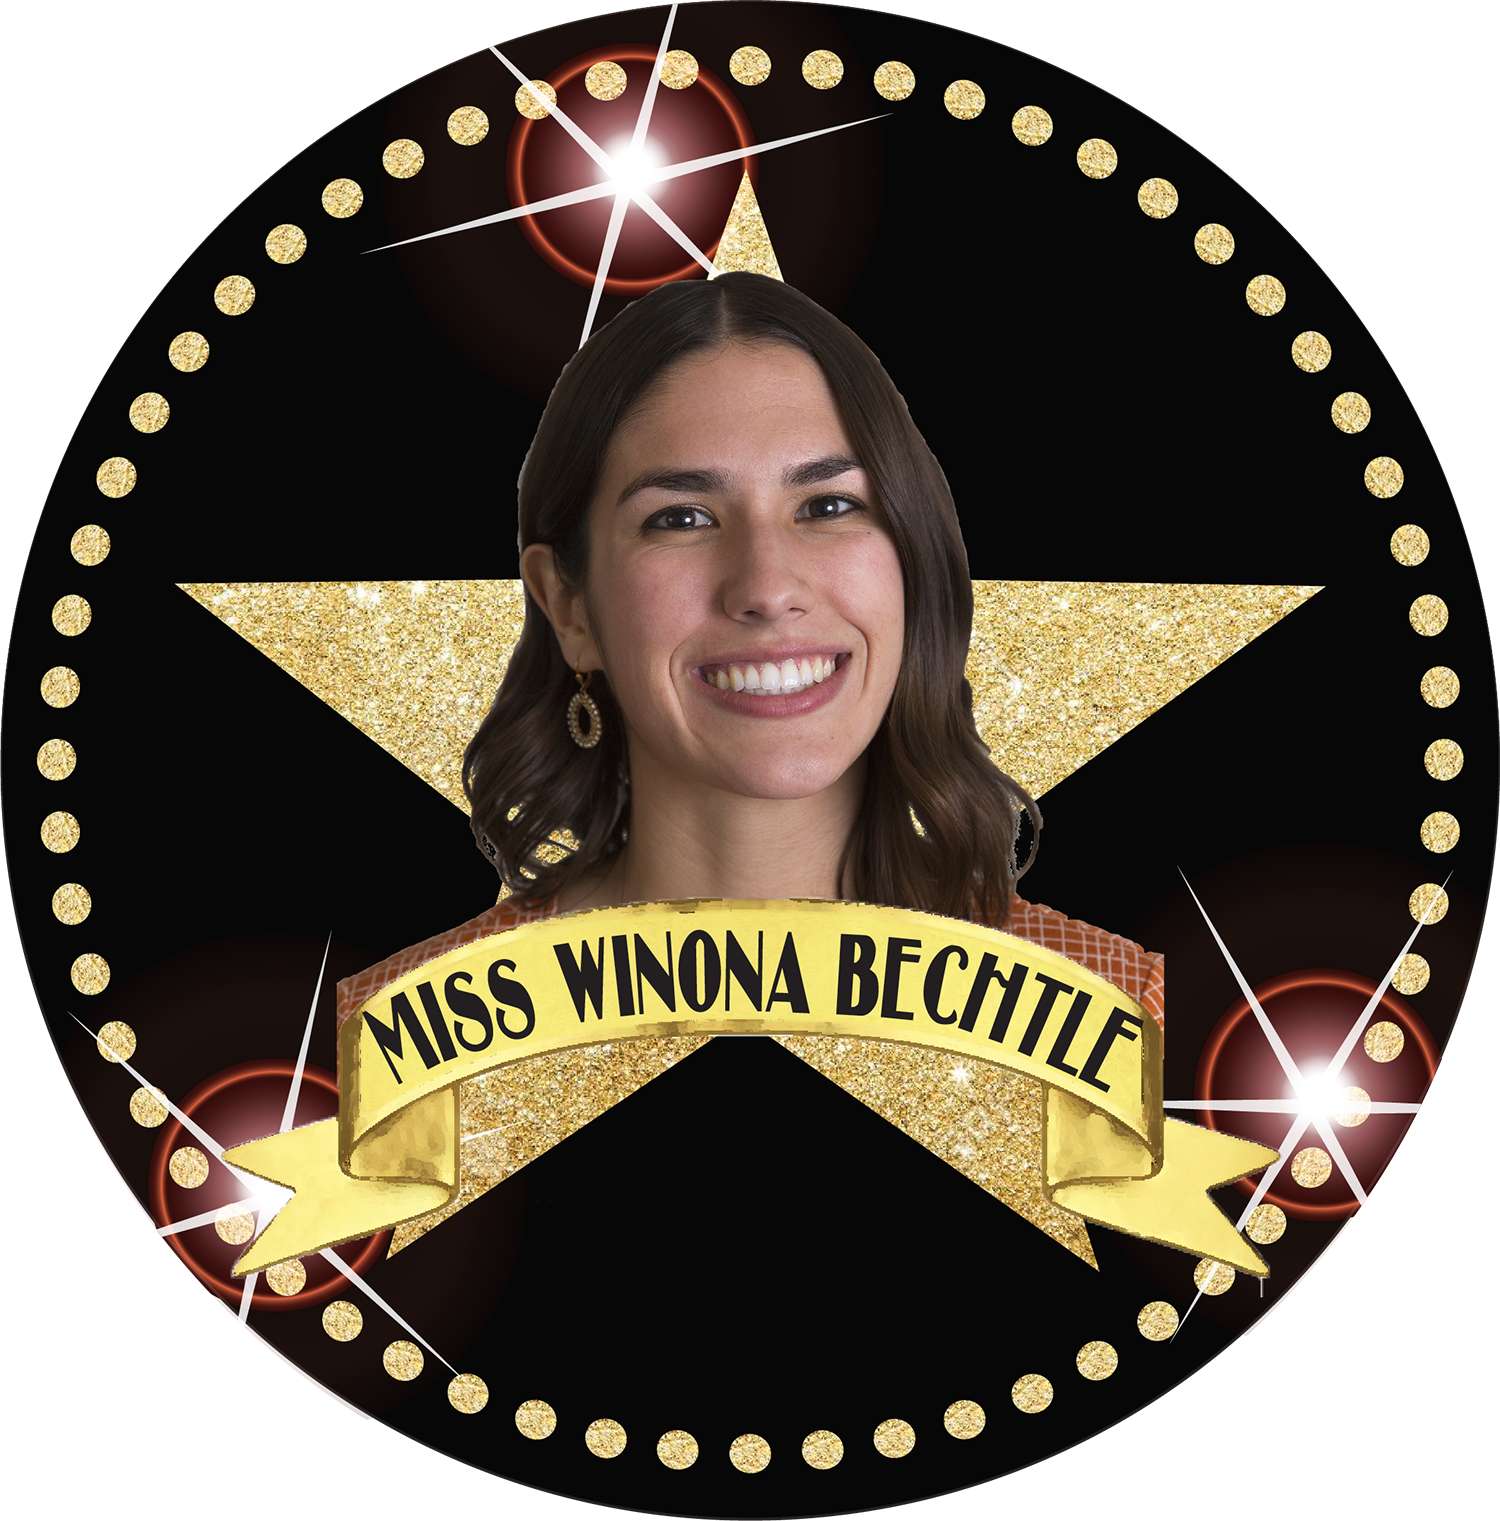 Stage Manager Winona Bechtle is an arts professional in the process of completing her Master's in  Arts Management at Claremont Graduate University . She is currently working with  ForYourArt  and  Los Angeles Filmforum , and has called Los Angeles home for 23 years.